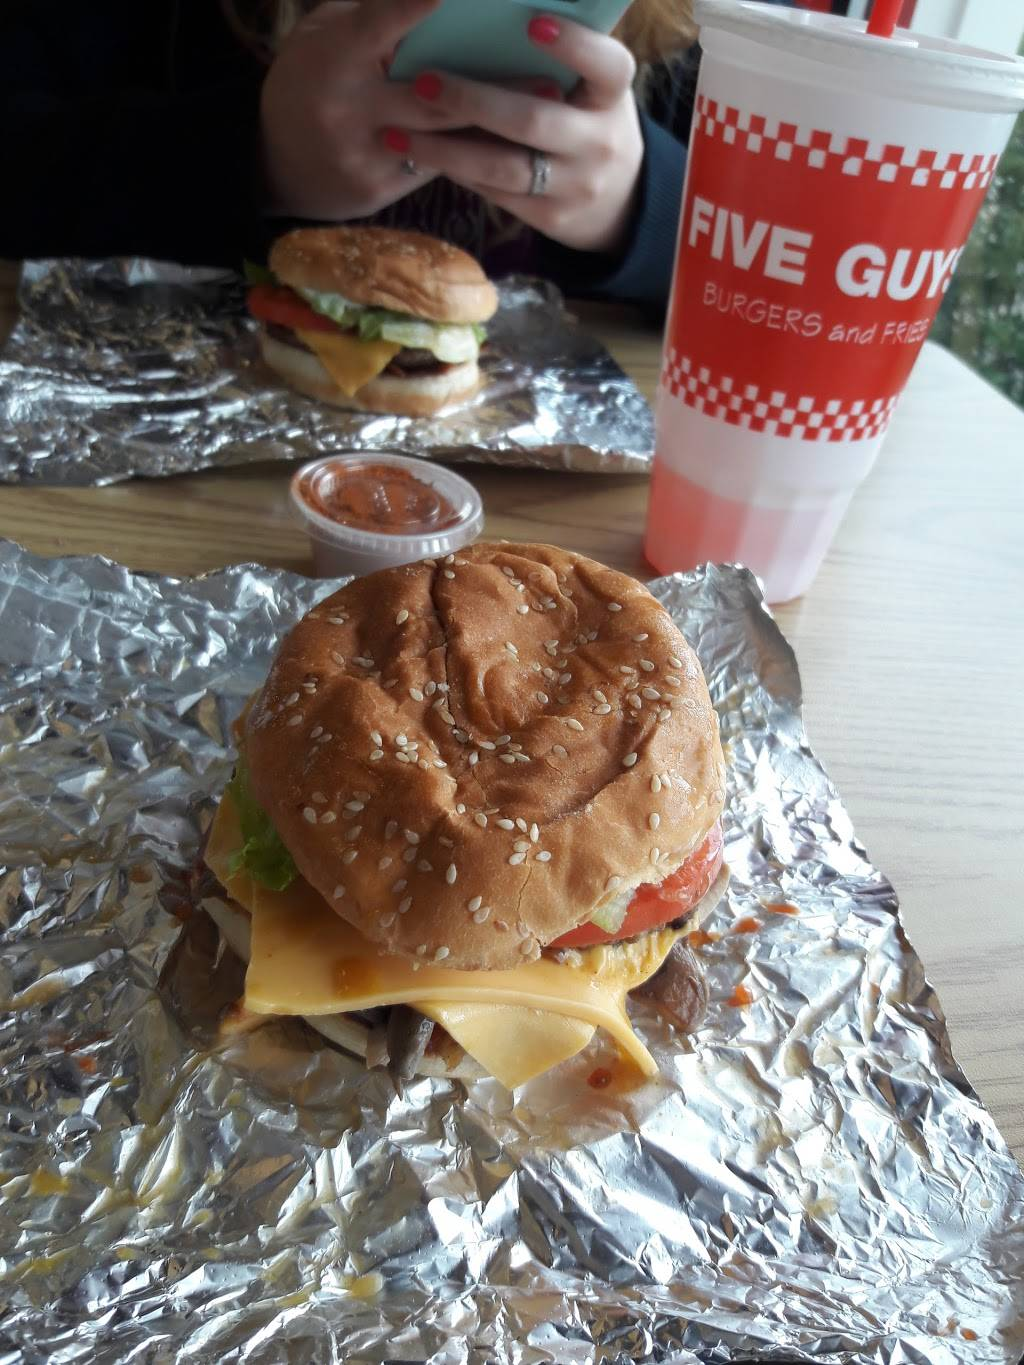 Five Guys | meal takeaway | 560 Washington St, Middletown, CT 06457, USA | 8603469200 OR +1 860-346-9200